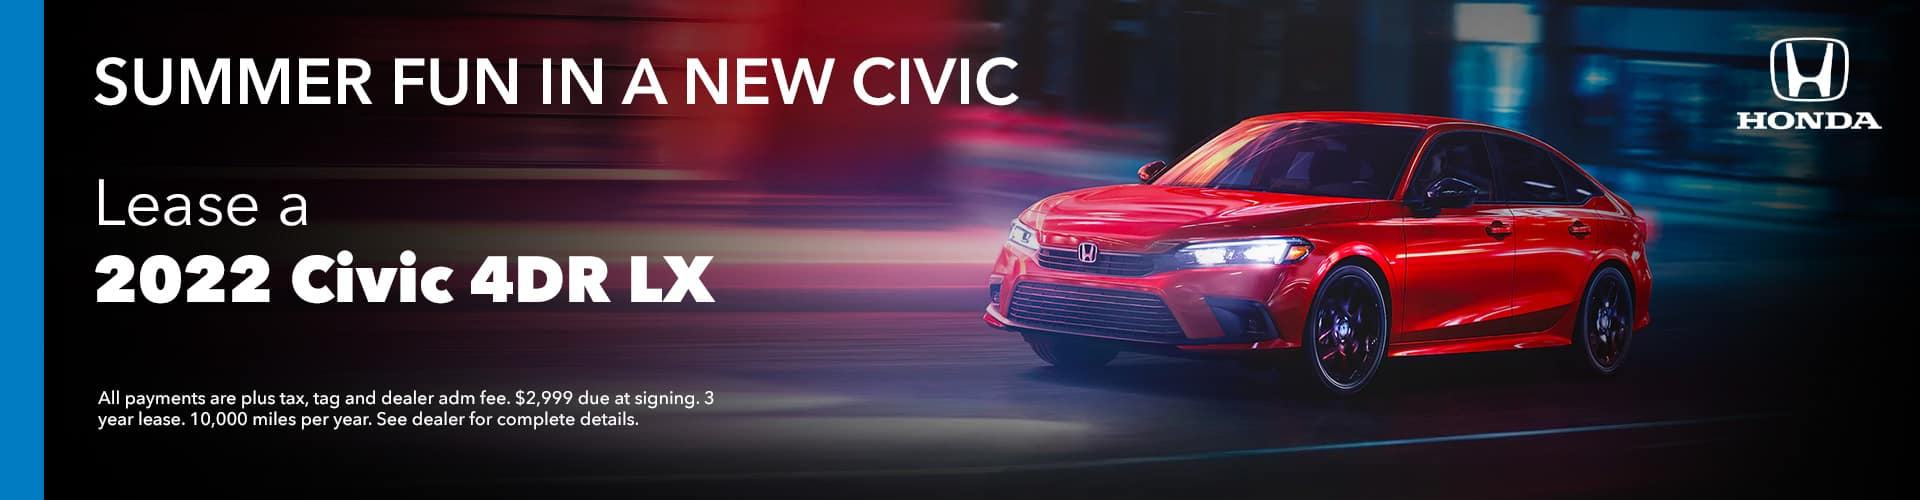 SUMMER FUN IN A NEW Civic, Lease 2022 Civic